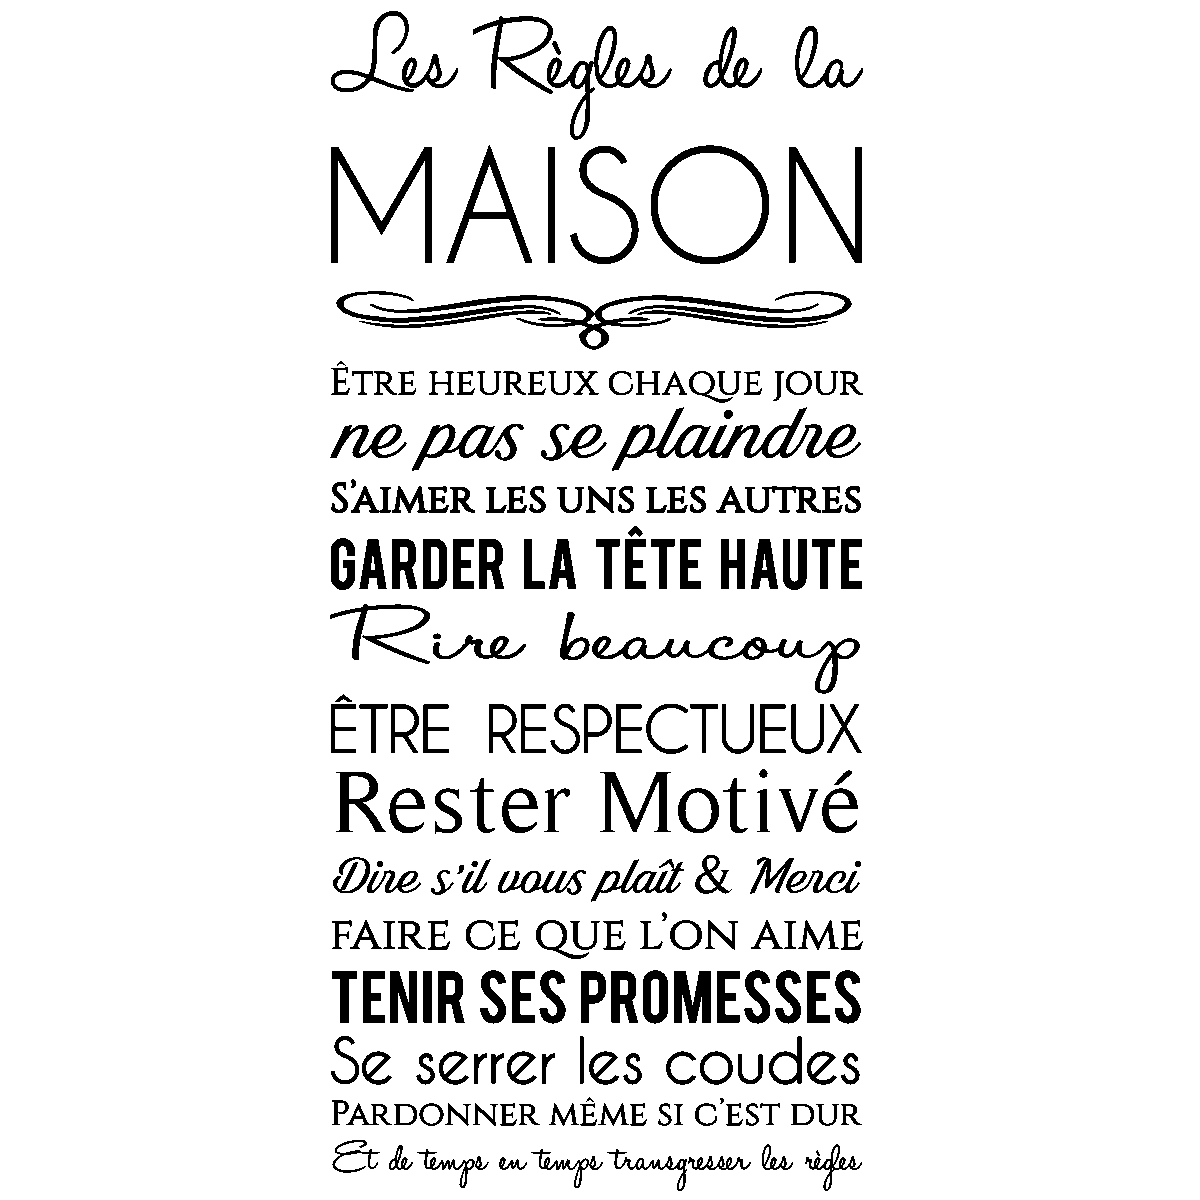 Wall Decal Les Regles De La Maison Design Wall Decal Quote Wall Stickers French Ambiance Sticker